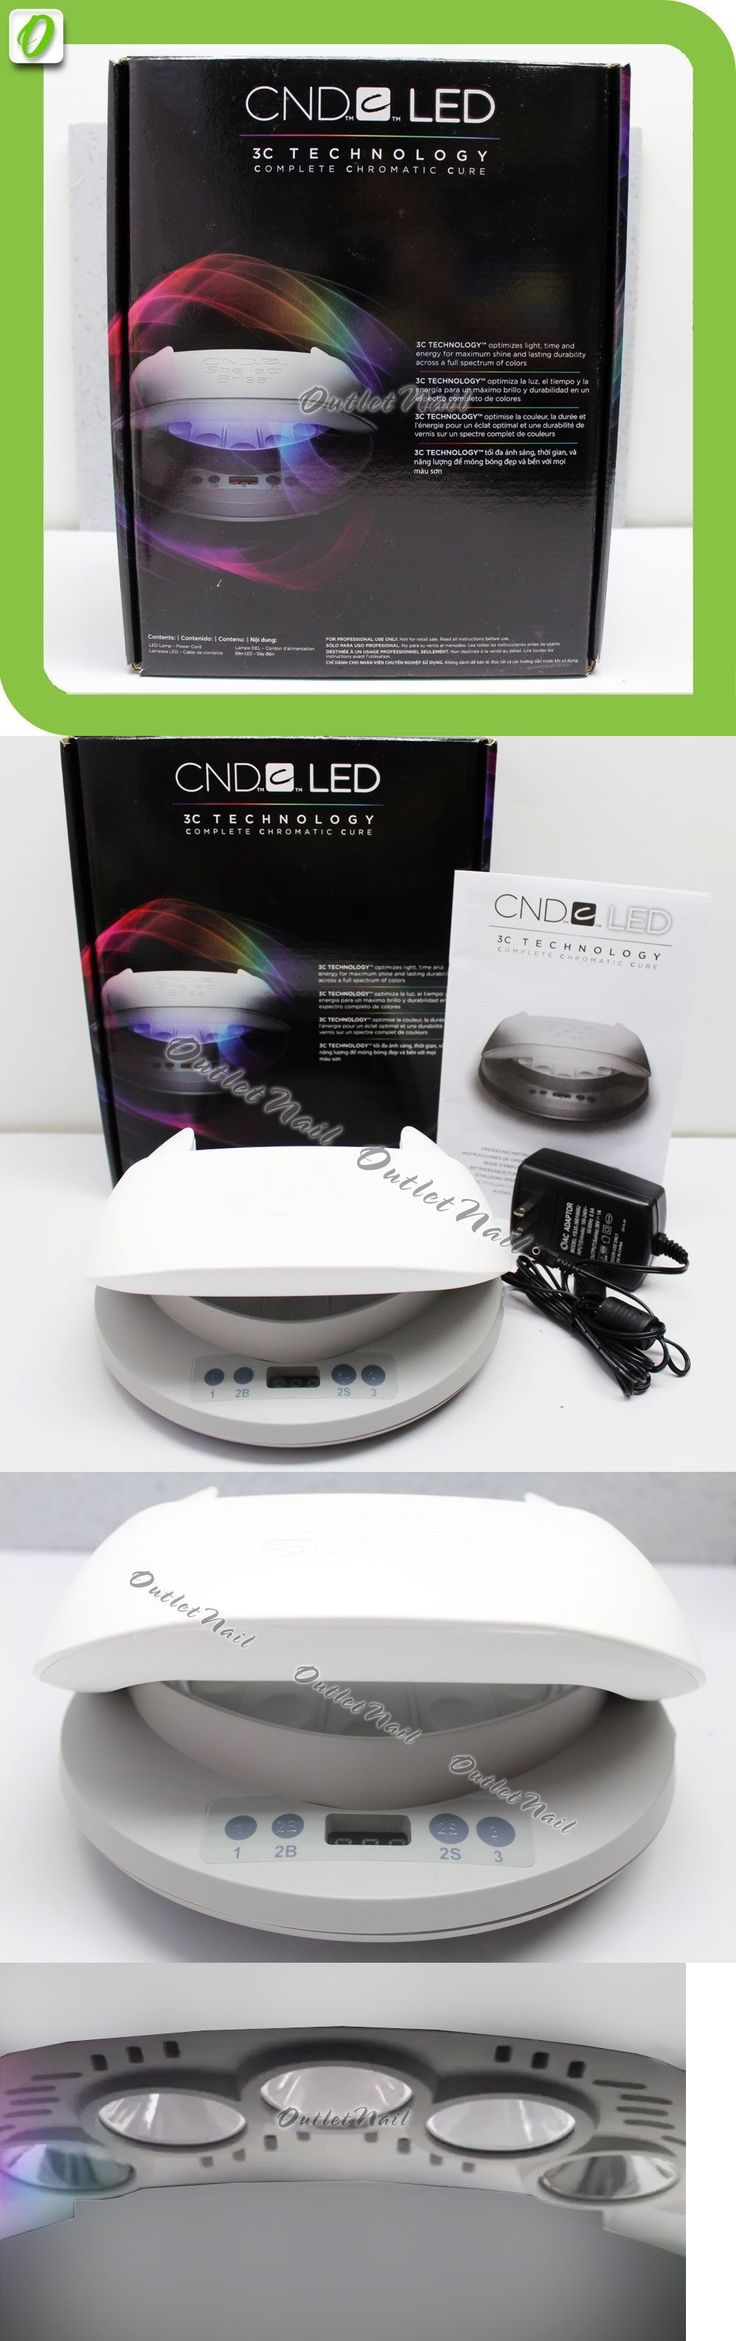 Nail Dryers and UV LED Lamps: Cnd Led Light Shellac Professional Lamp Nail Dryer 3C Tech Free Uk Au Eu Nz Plug -> BUY IT NOW ONLY: $84.93 on eBay!